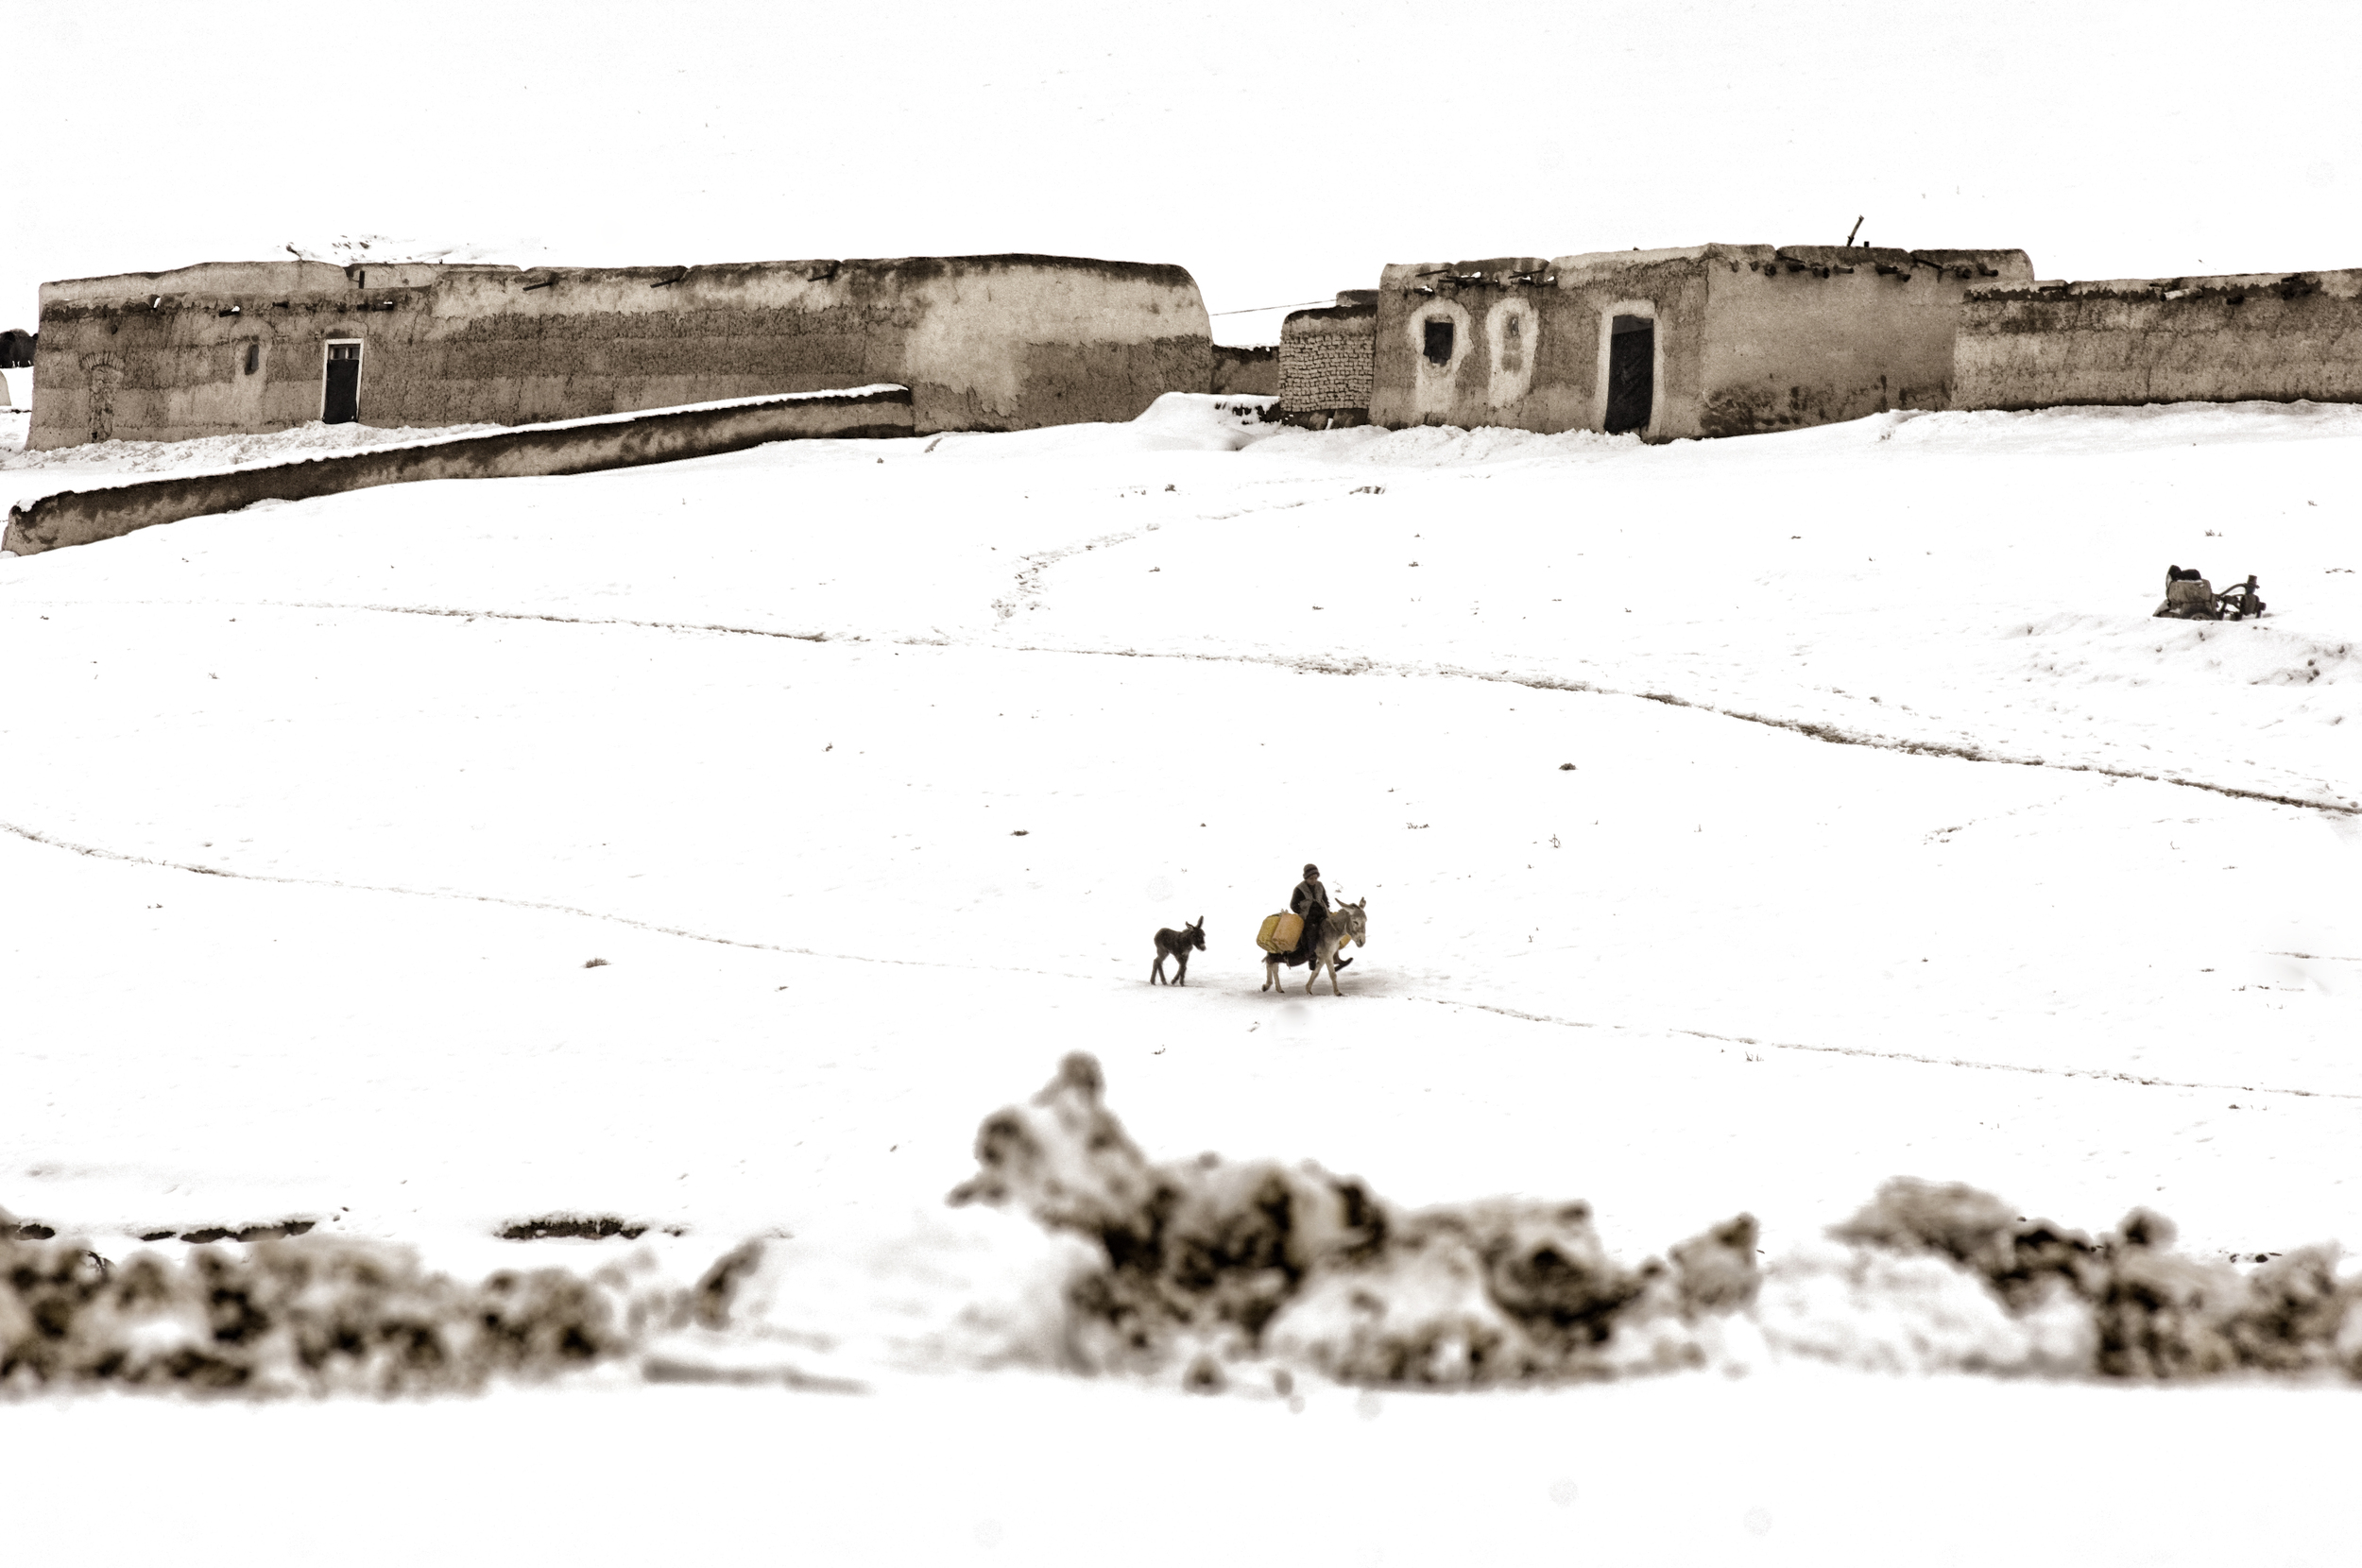 Nearly half the villages in western Afghanistan had been cut off from the major cities due to heavy snowfall, the cold snap hit the agricultural and livestock industry hard with more than 130,000 cattle perishing in the freezing temperatures Faryab Province, Afghanistan, February 14, 2008. (Photo/Mark Pearson)